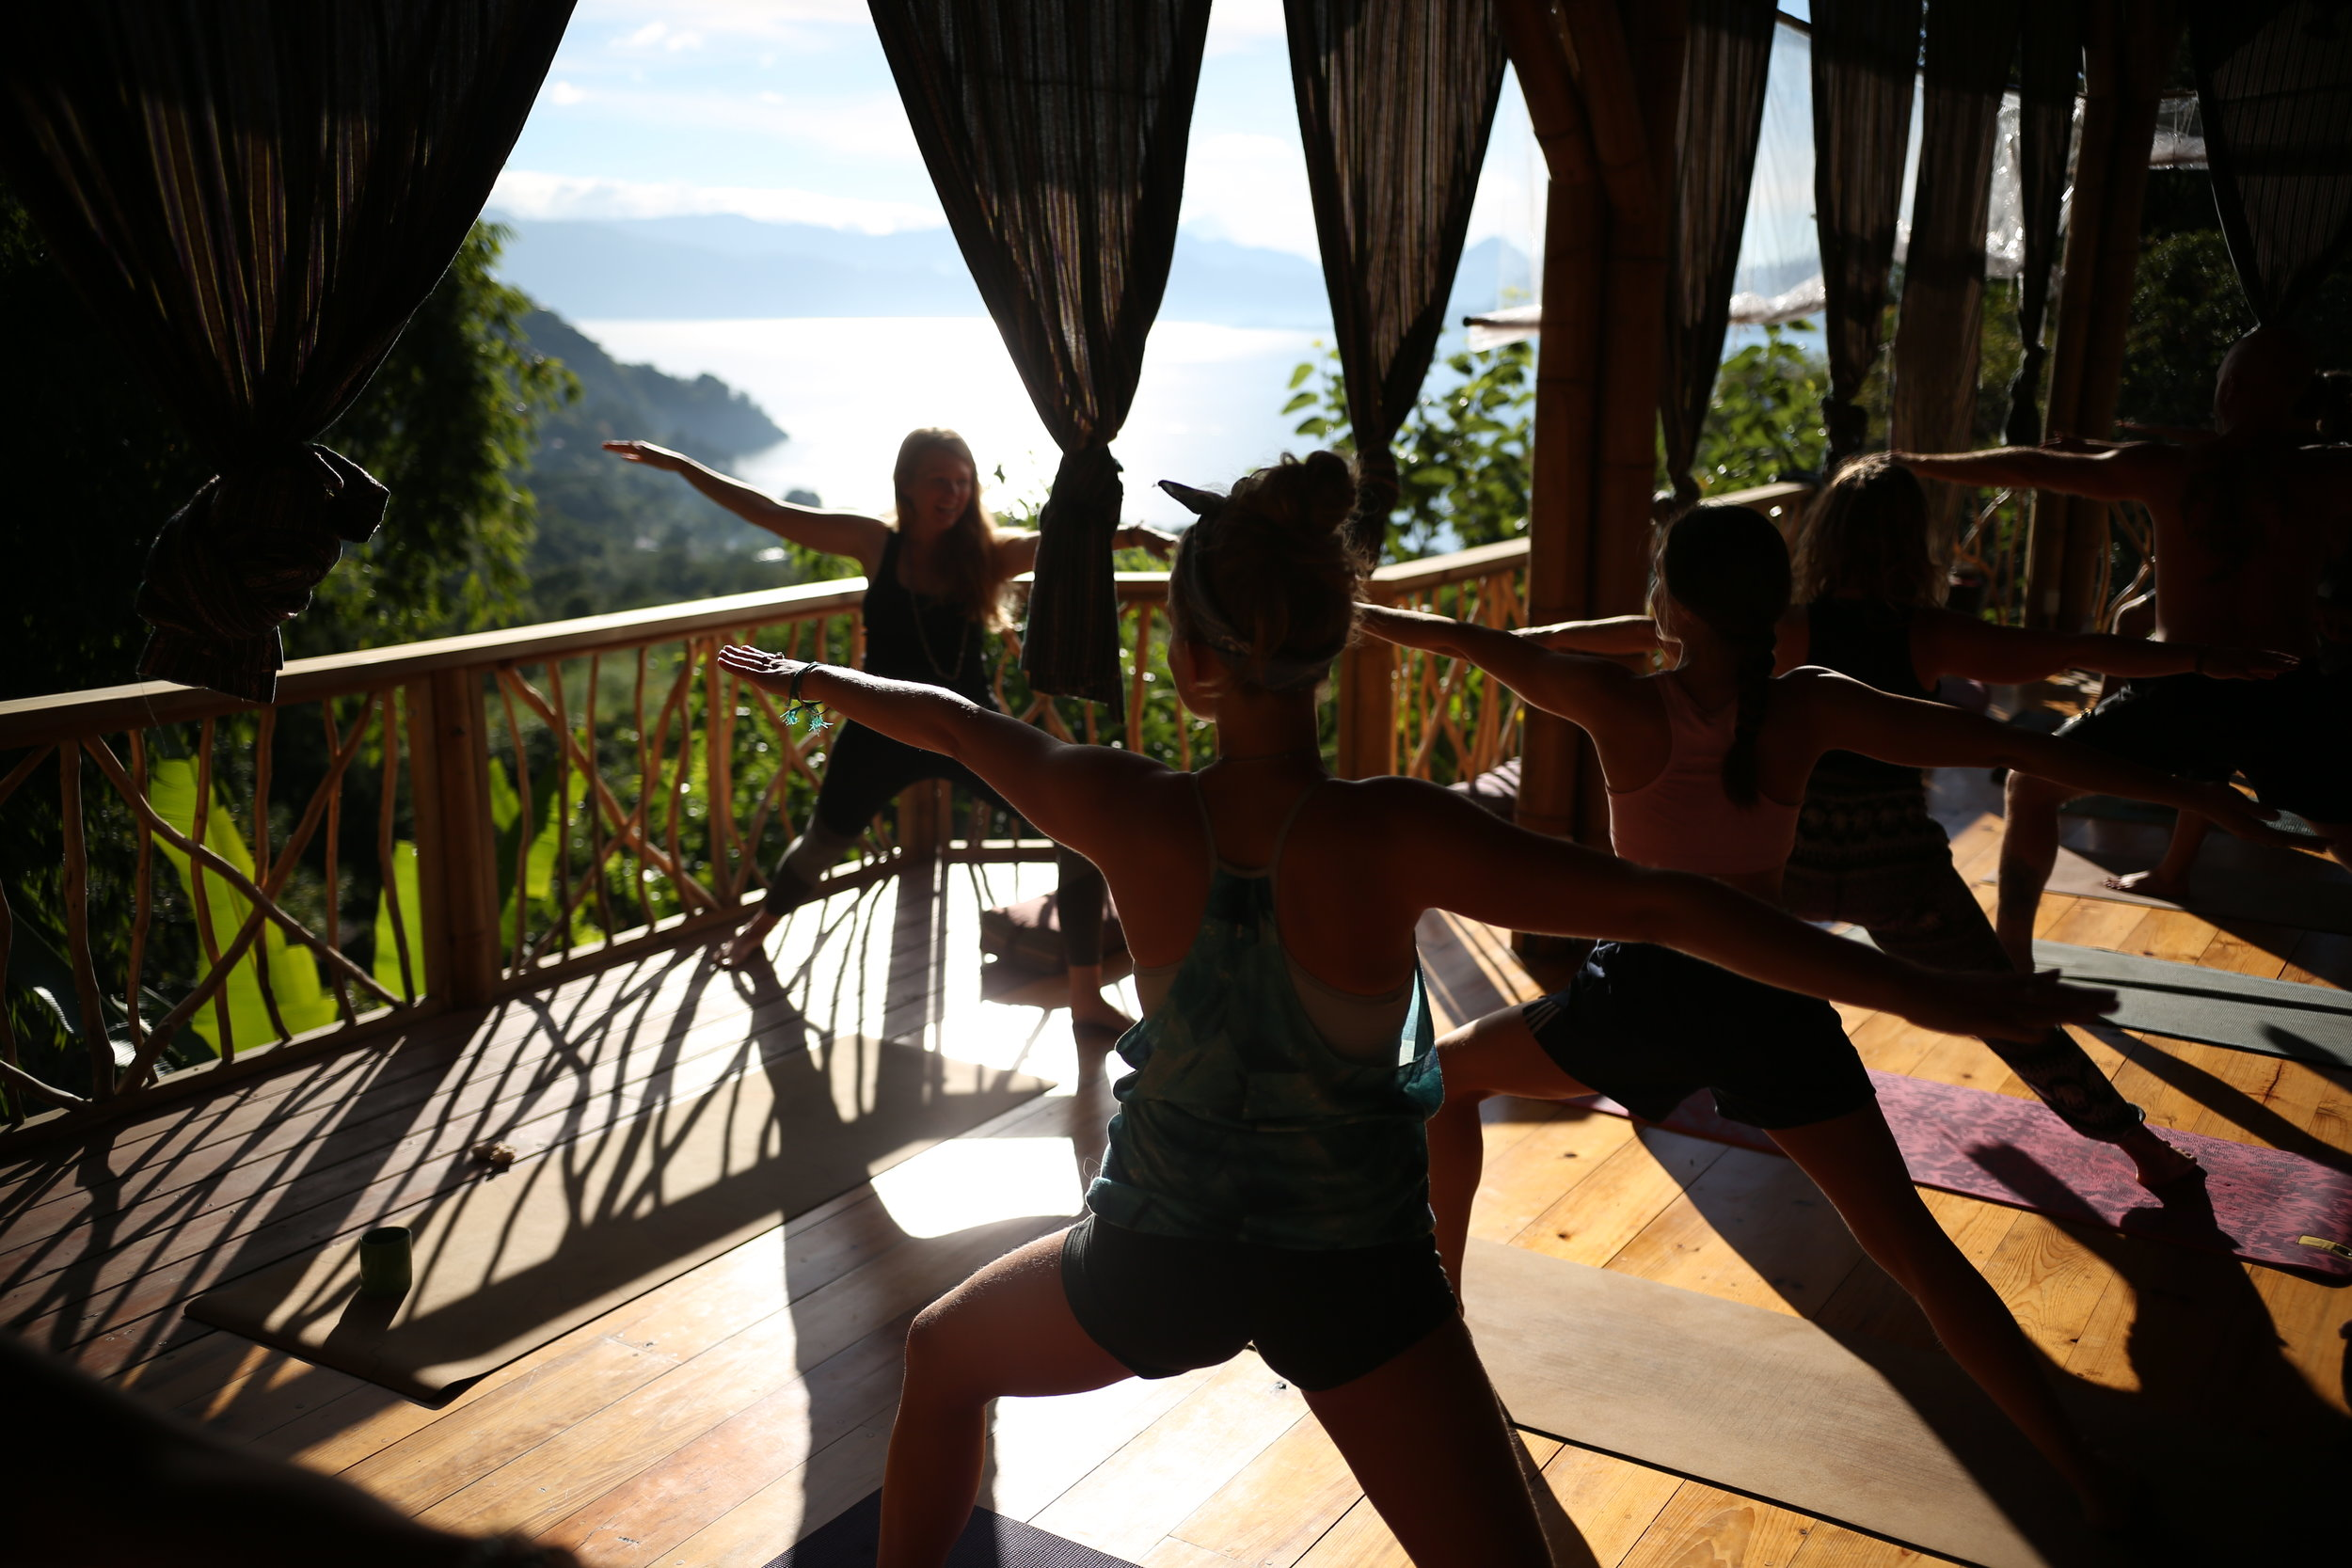 Morning yoga practice during the Sacred Earth YTT in Guatemala